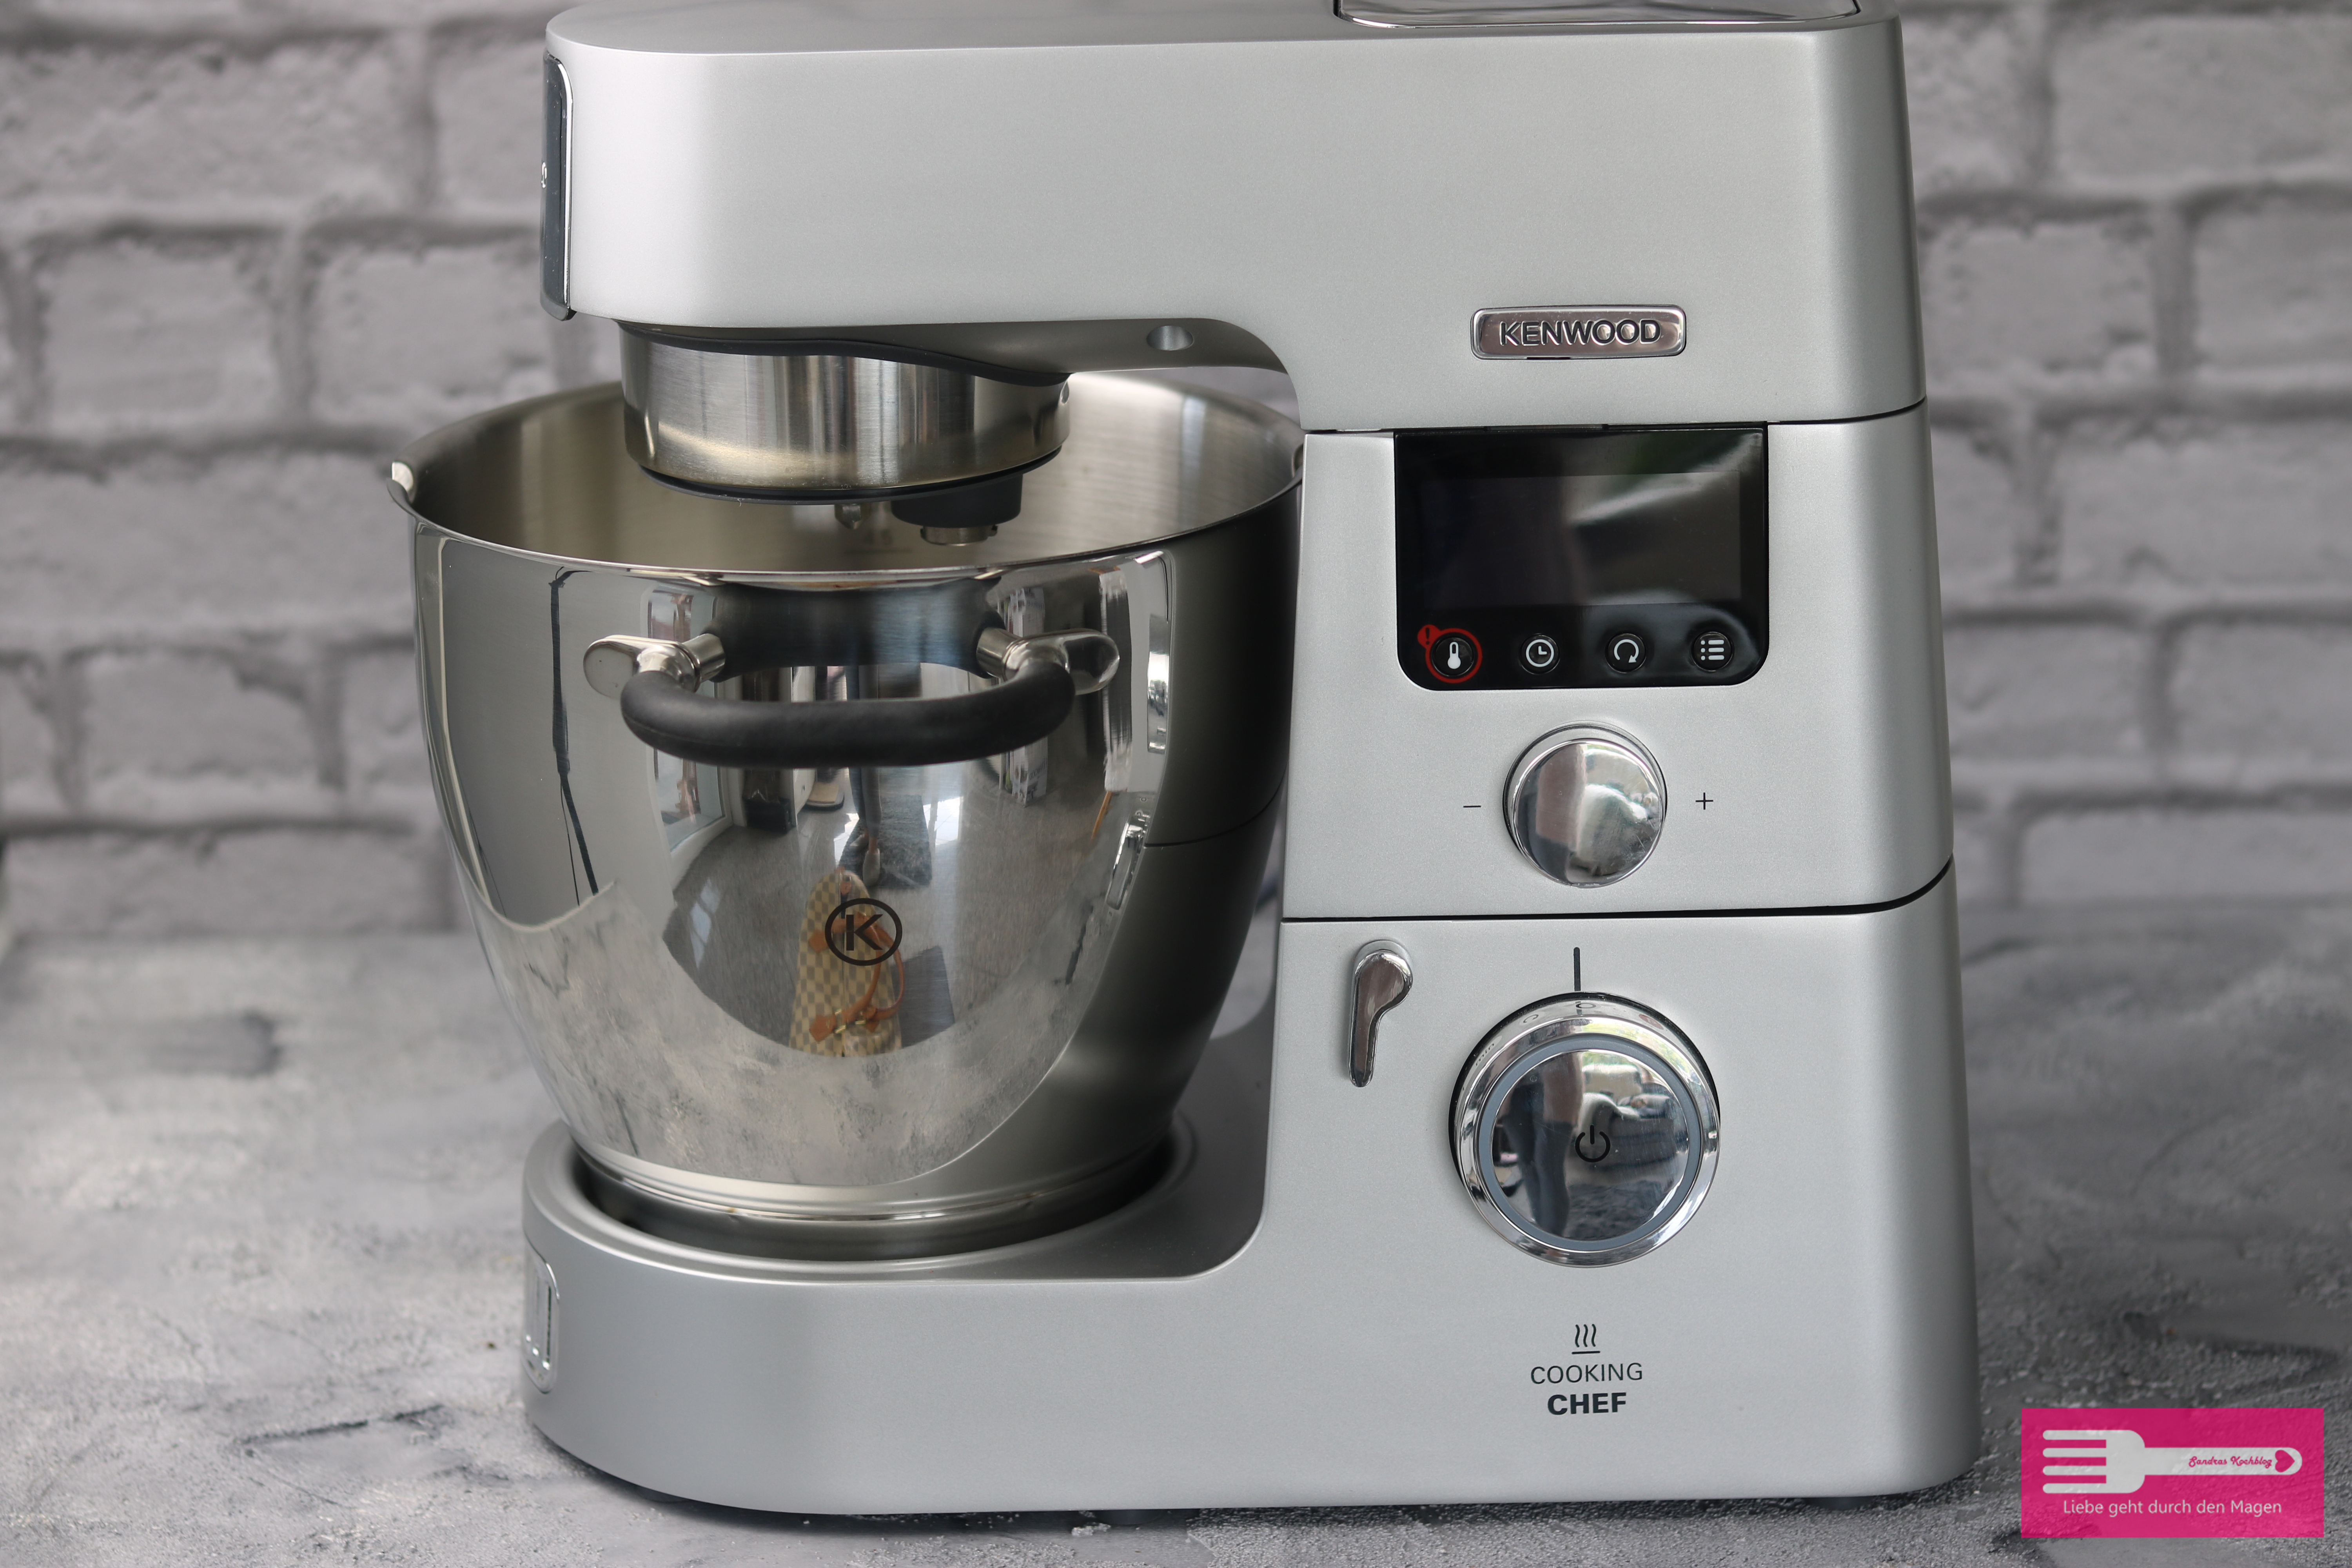 Kenwood Cooking Chef Gourmet KCC 9060 S